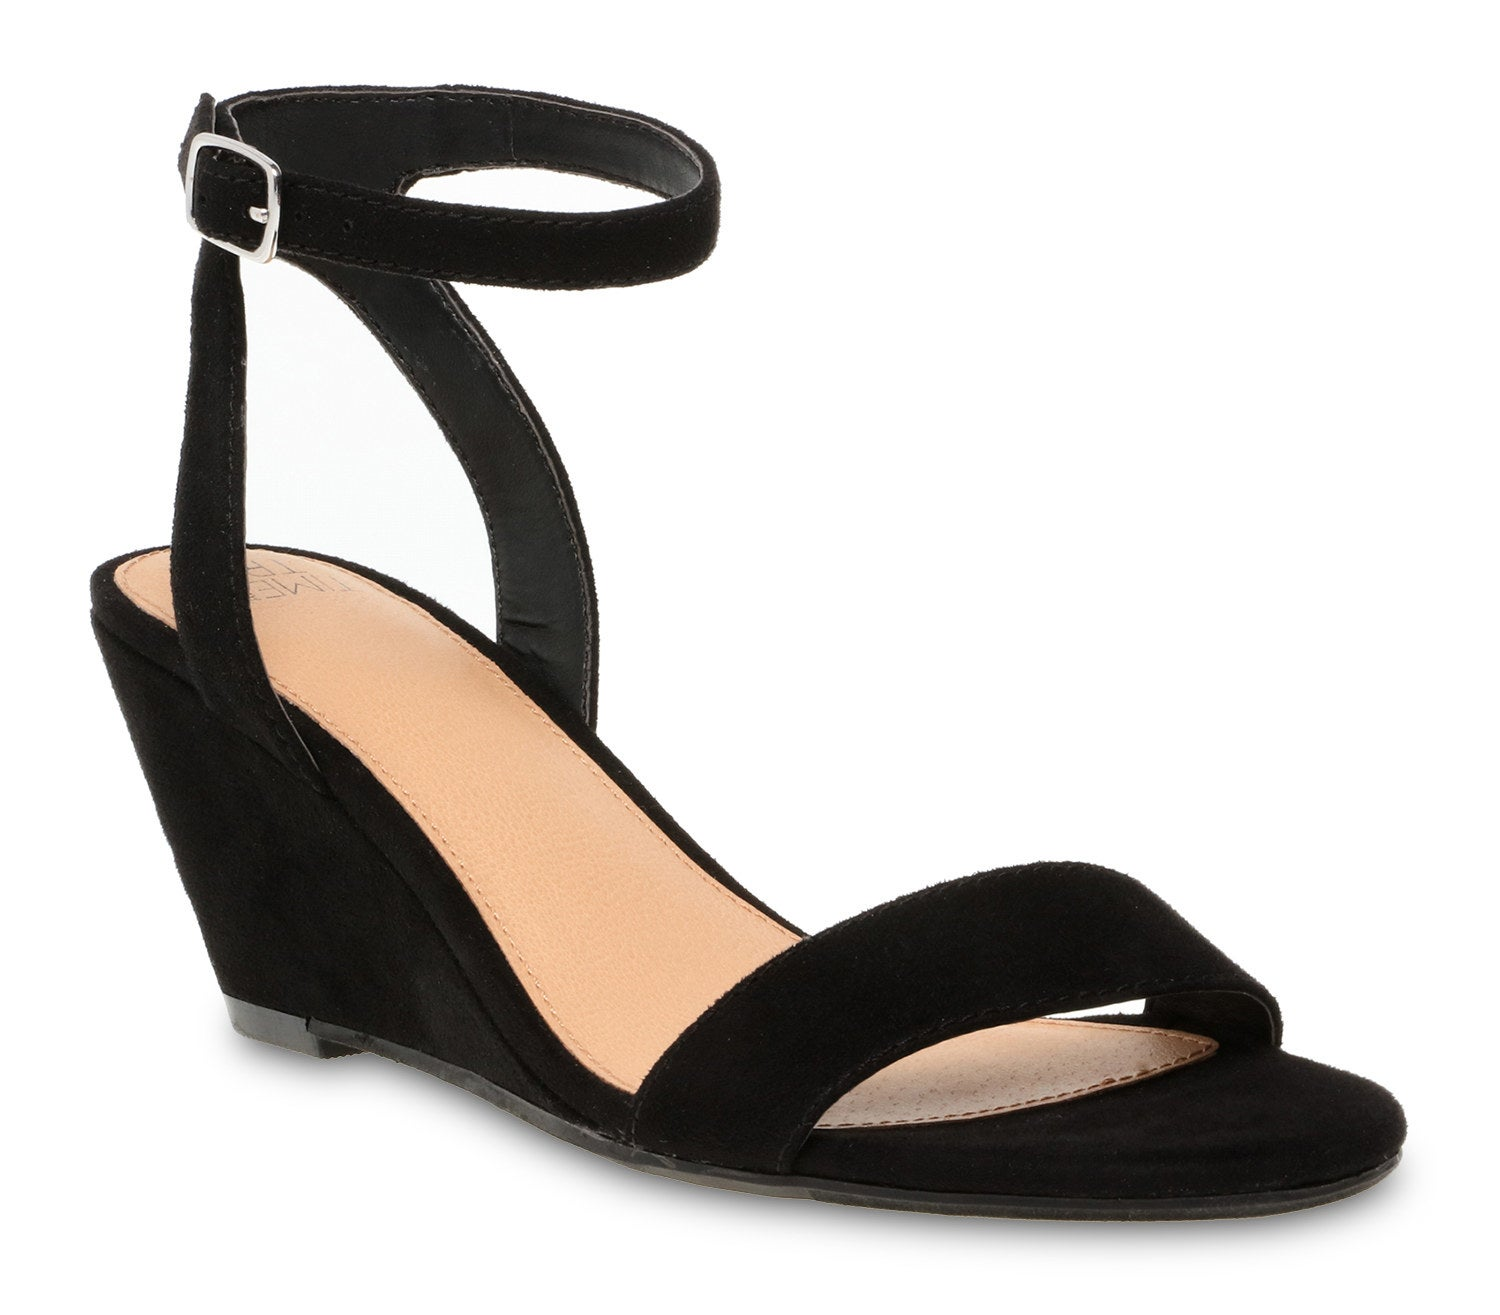 the black strappy wedges